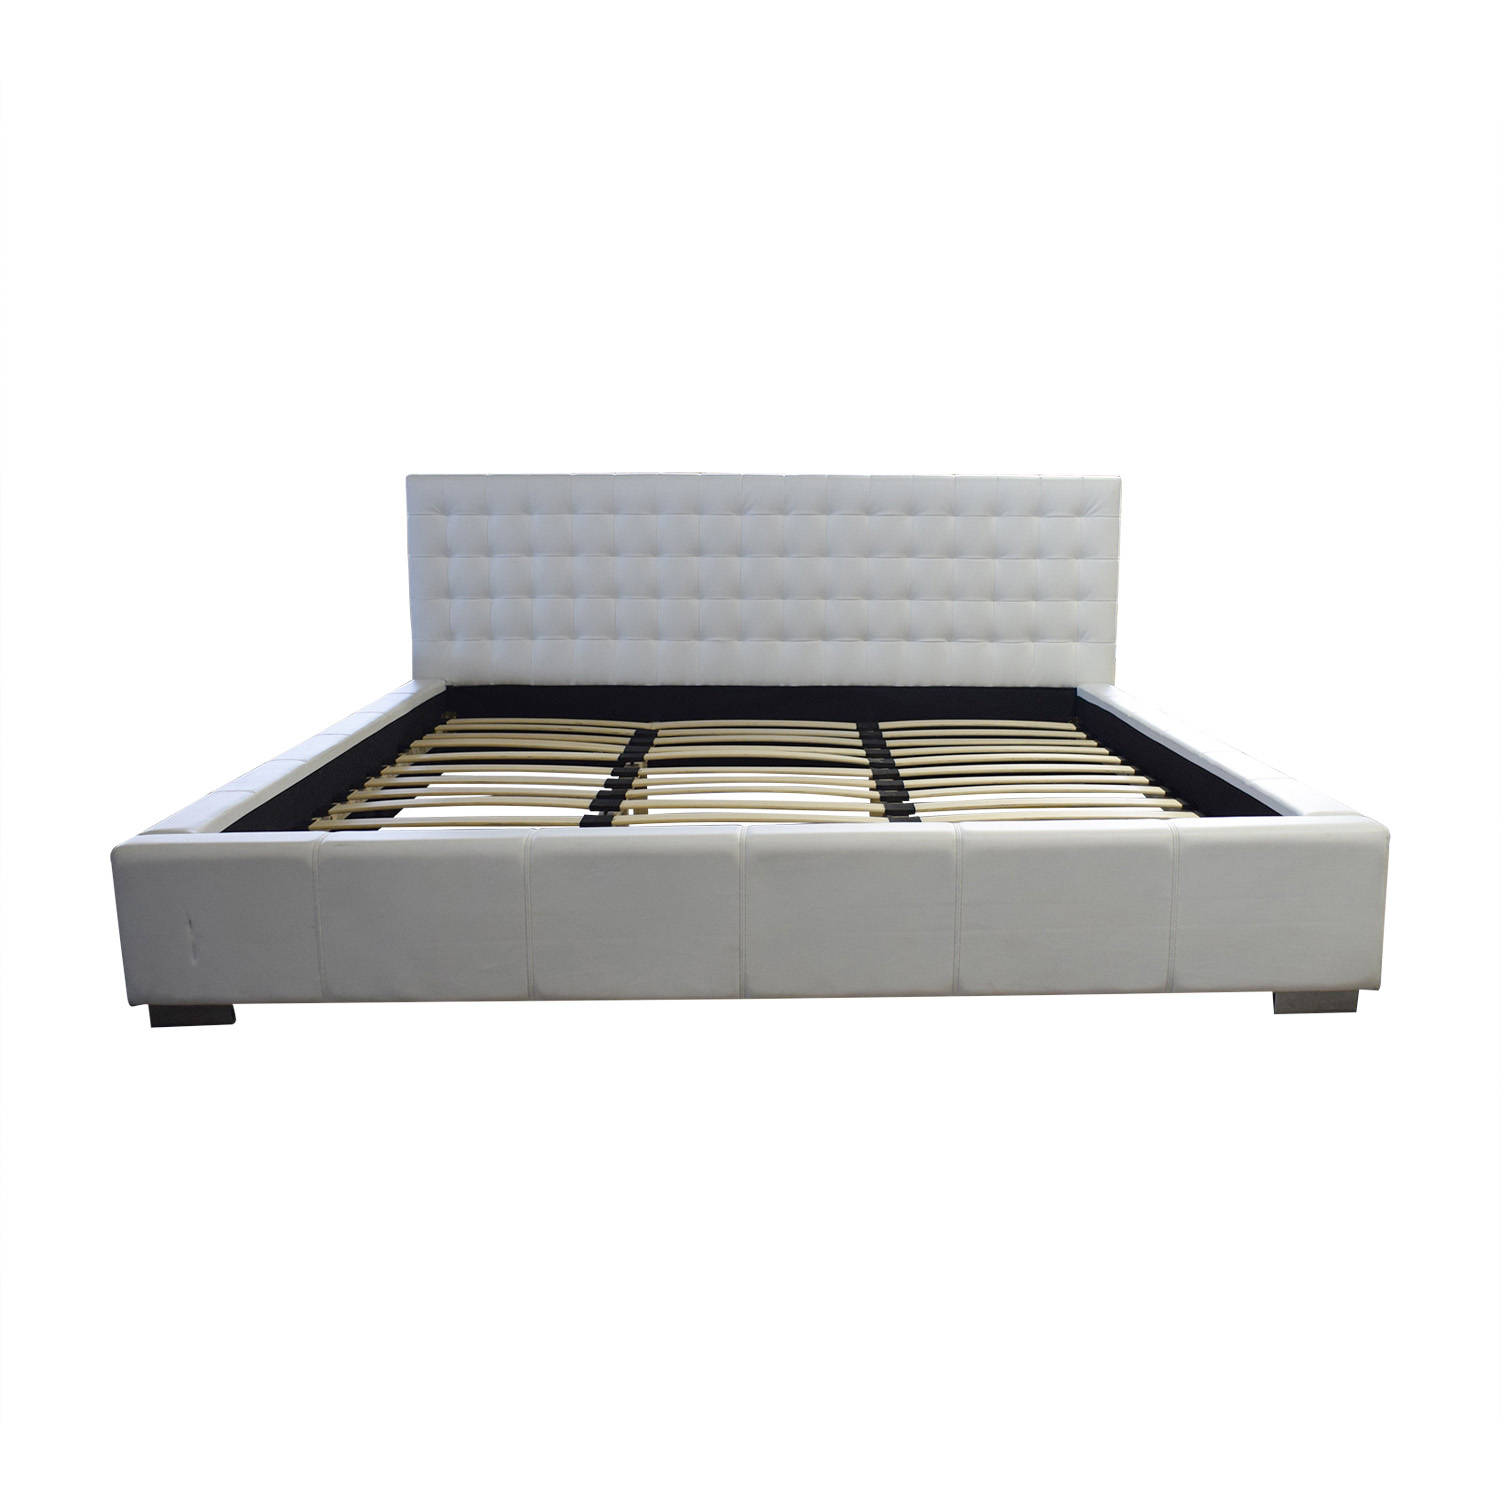 Madison Tufted White Leather King Bed Frame / Beds